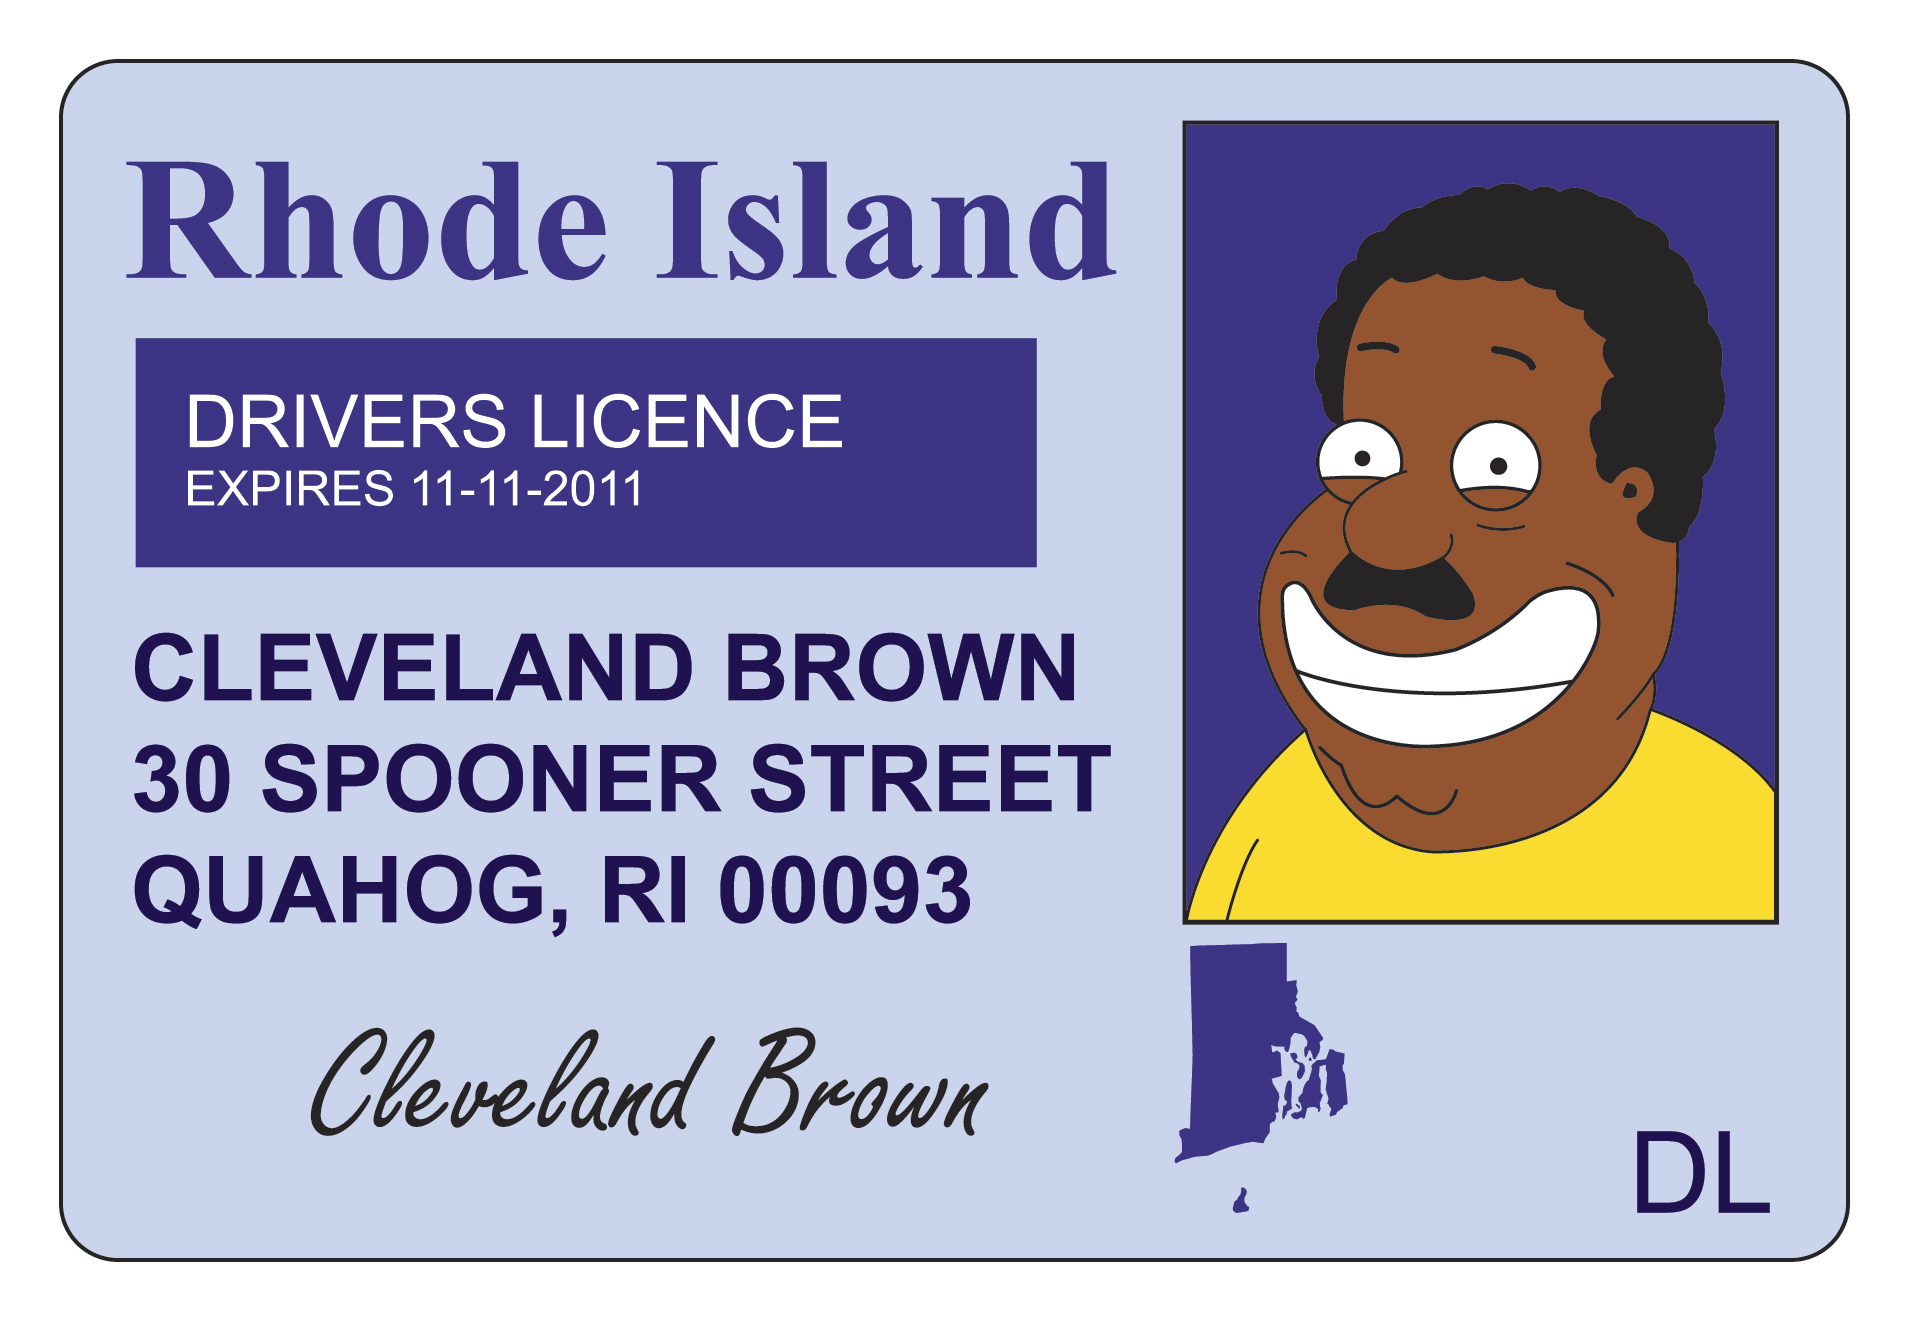 Drivers license clipart. Which baseball player has